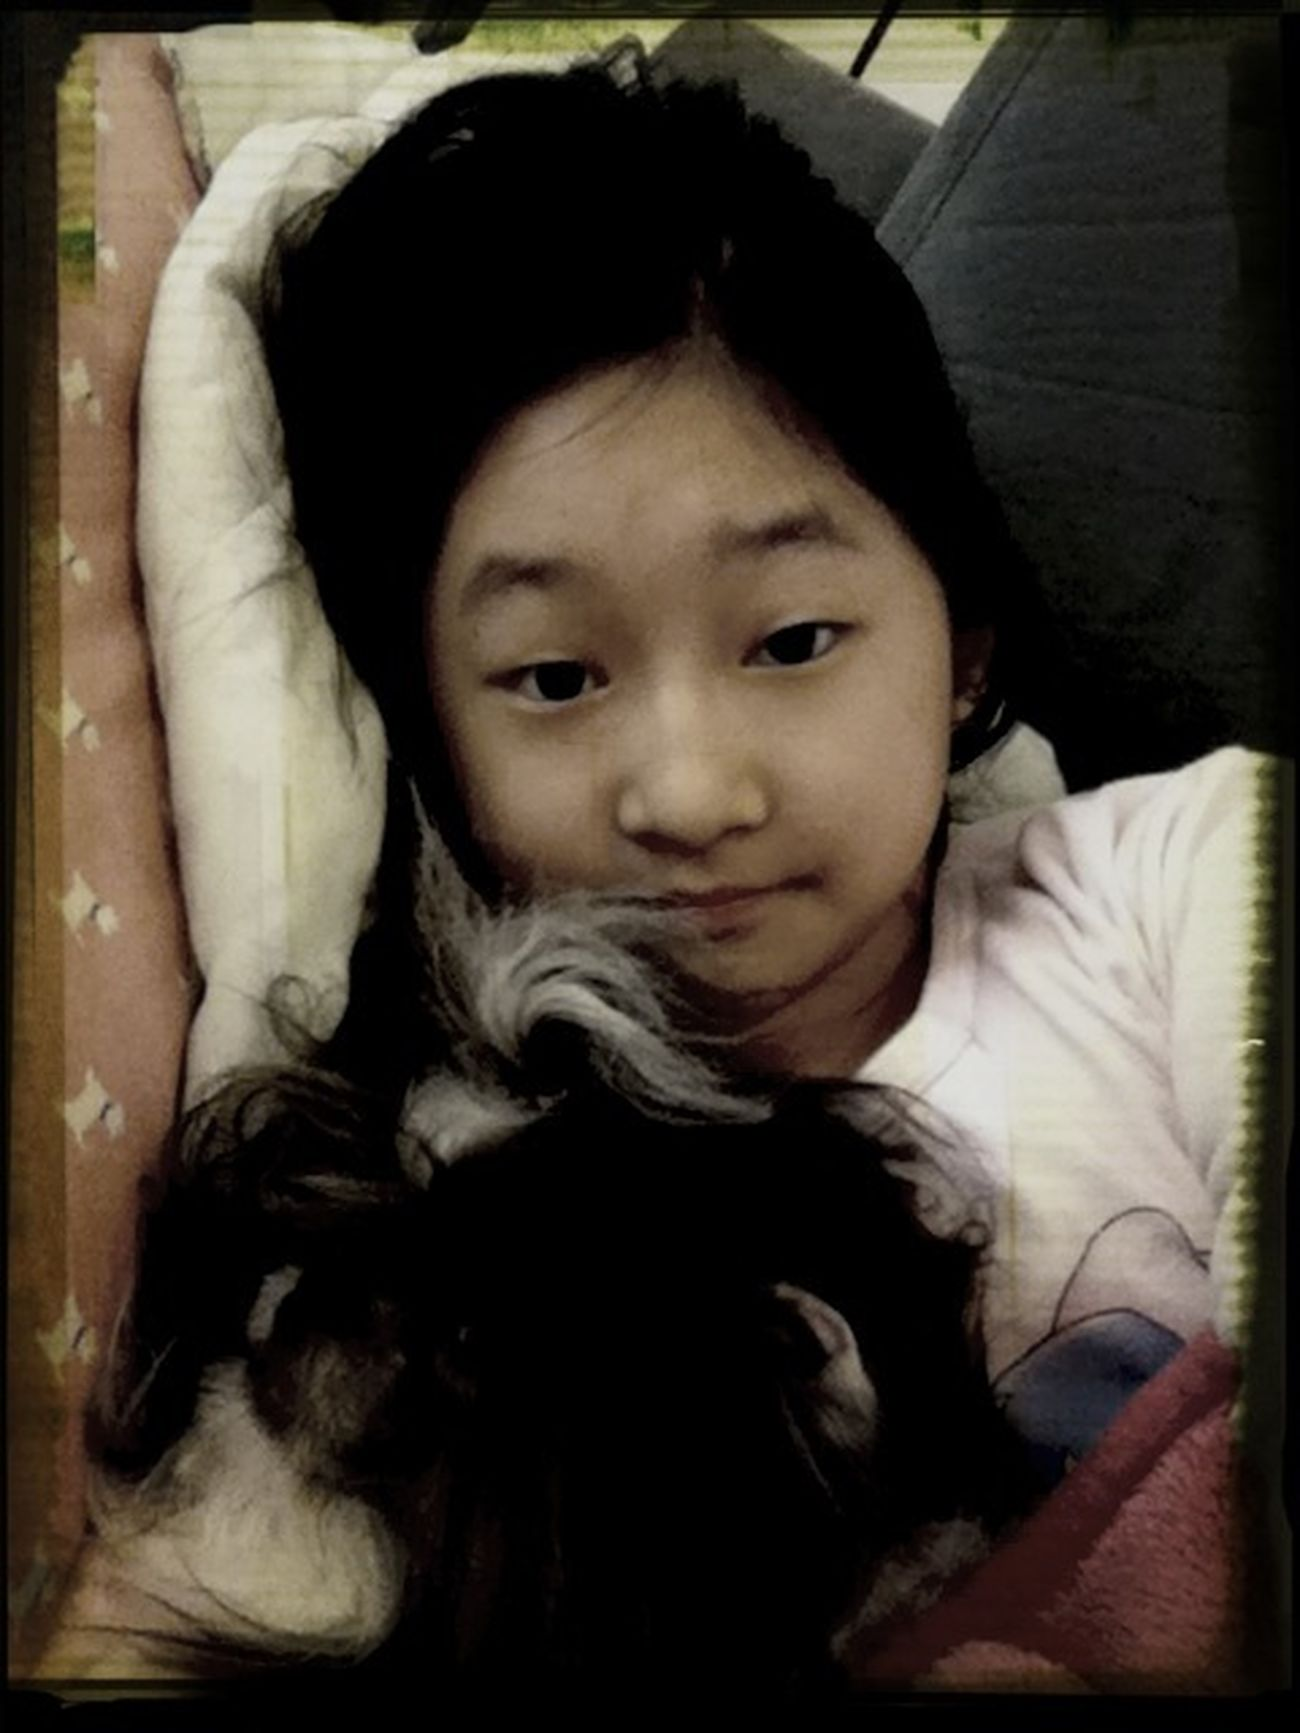 Me And My Dog